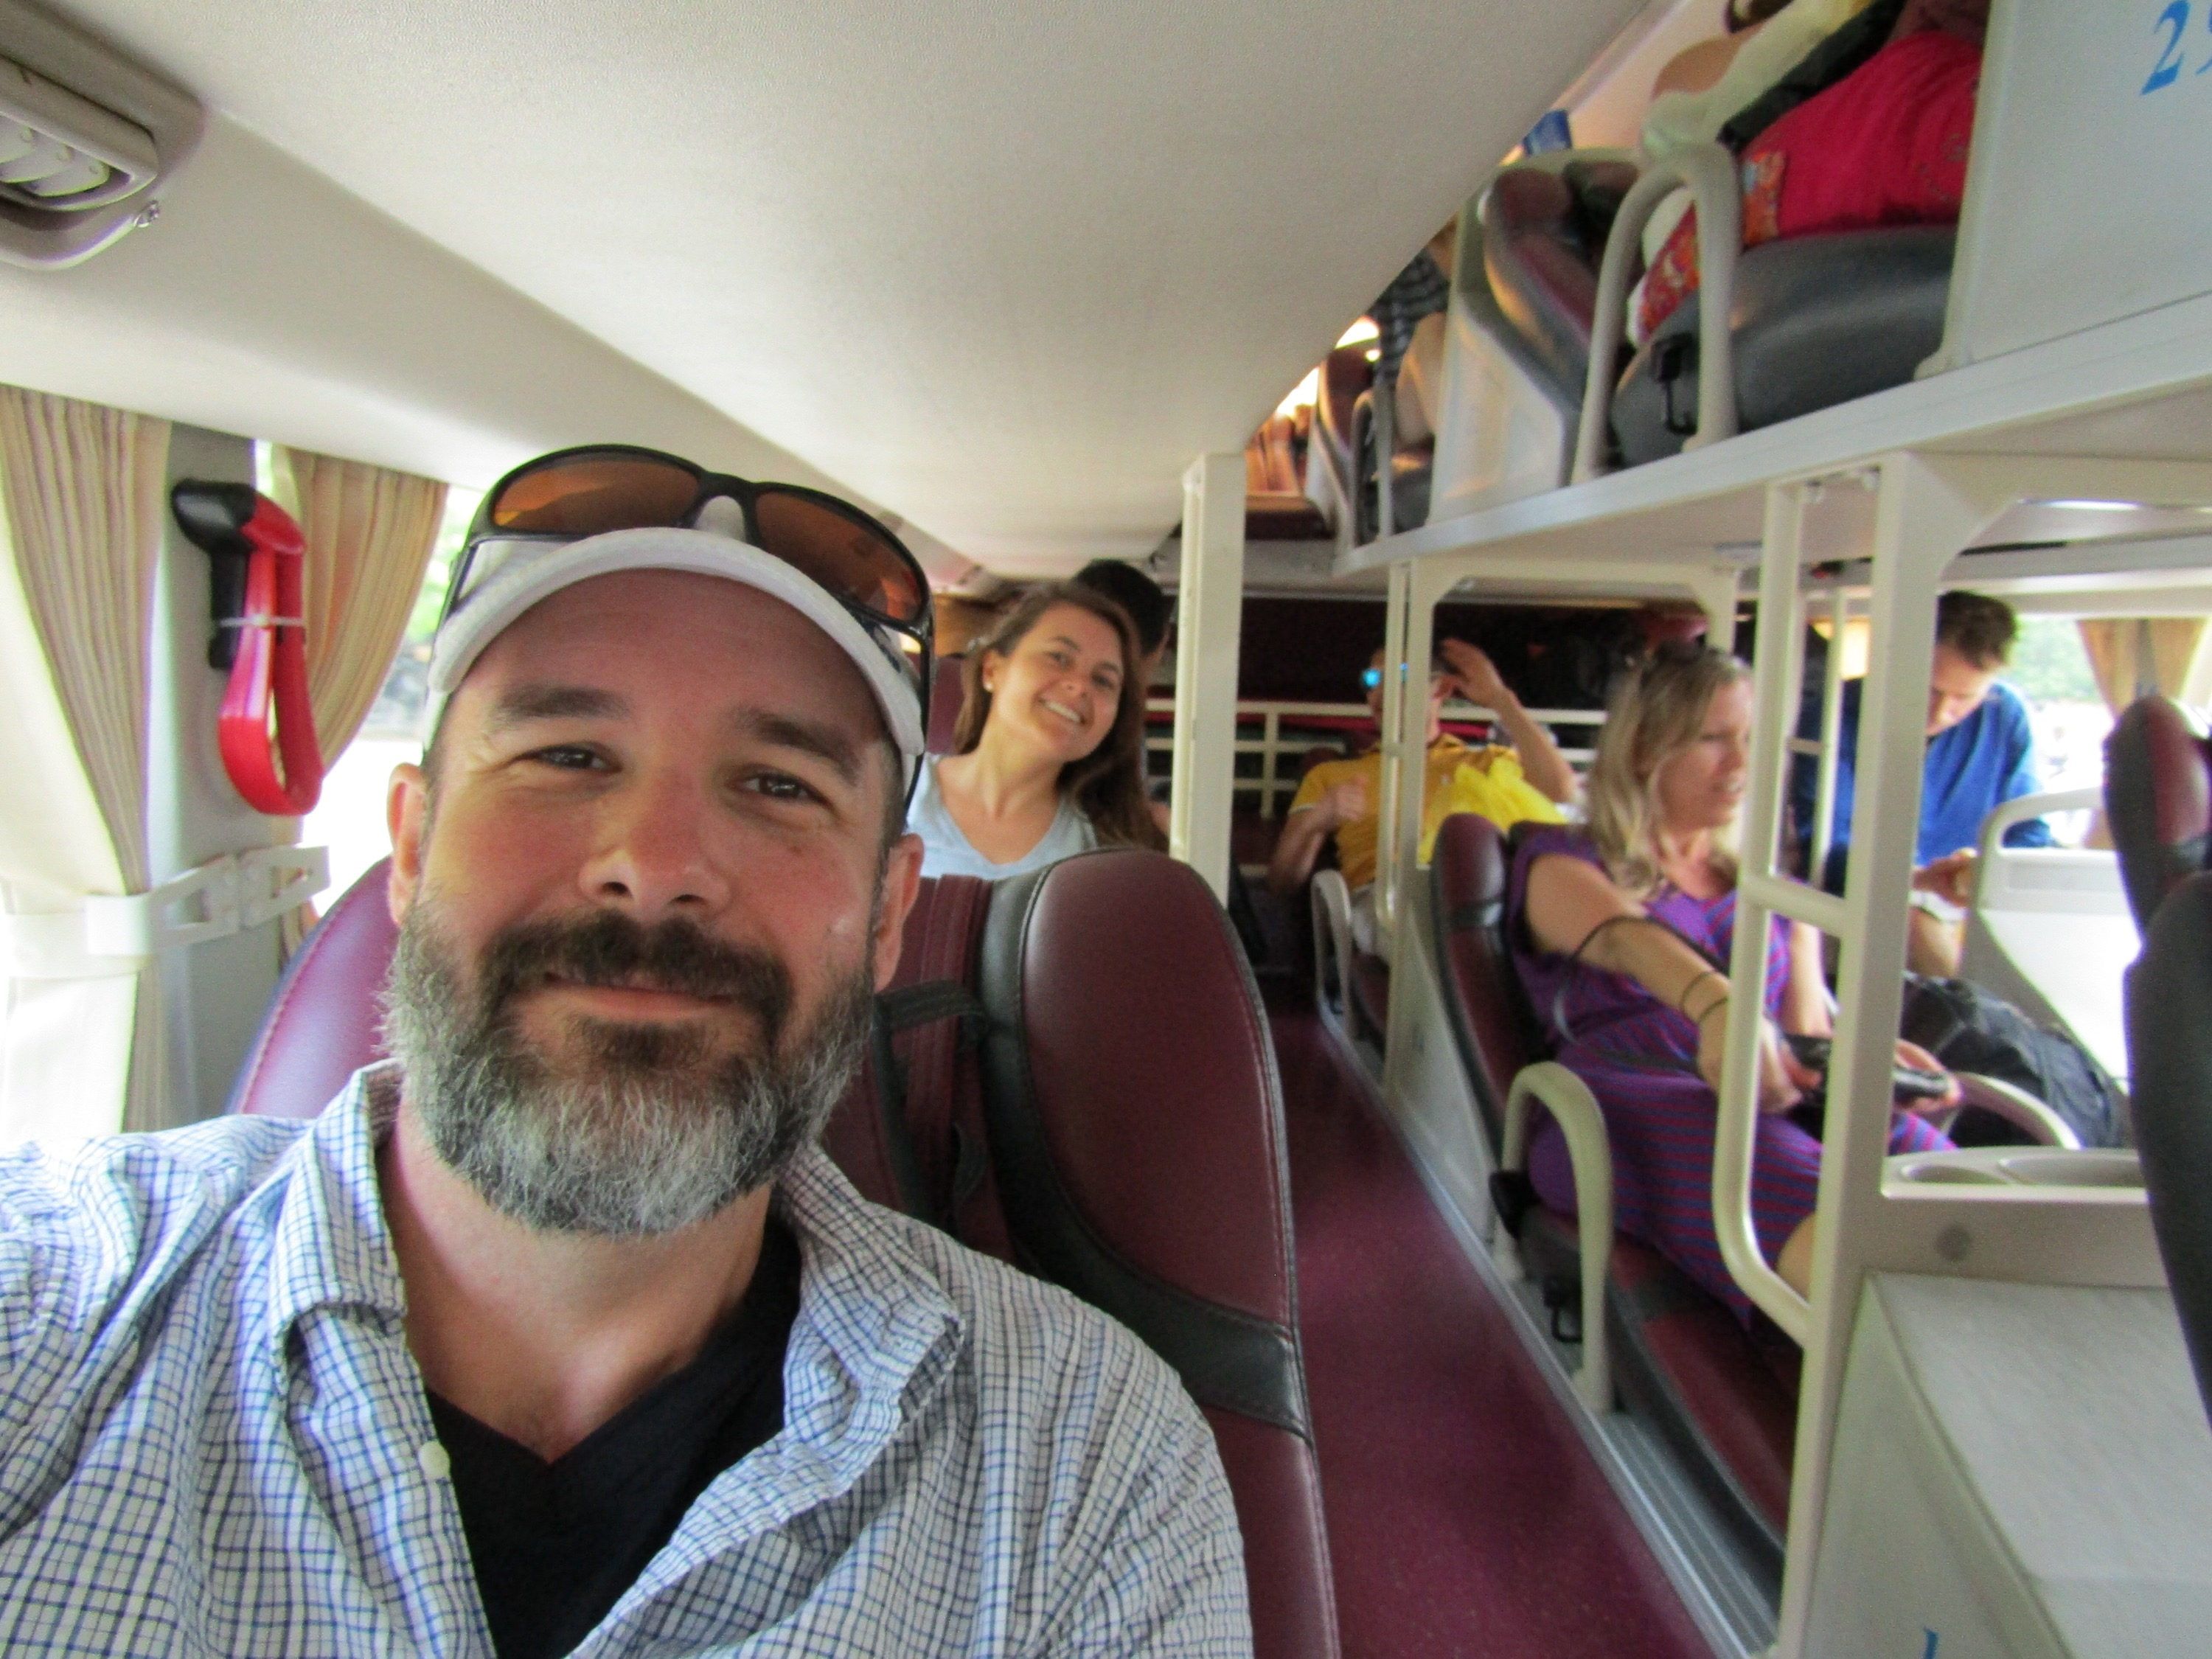 We knew our tour group would be making the trip from Hue to Hoi An on a public bus, but we were all surprised when a luxury coach showed up. Complete with reclining lounge seats and a complimentary bottle of water, it was a far cry from the #17 city bus from the airport in Hanoi. Sure enough, we picked up and dropped off passengers all the along the four-plus hour route.